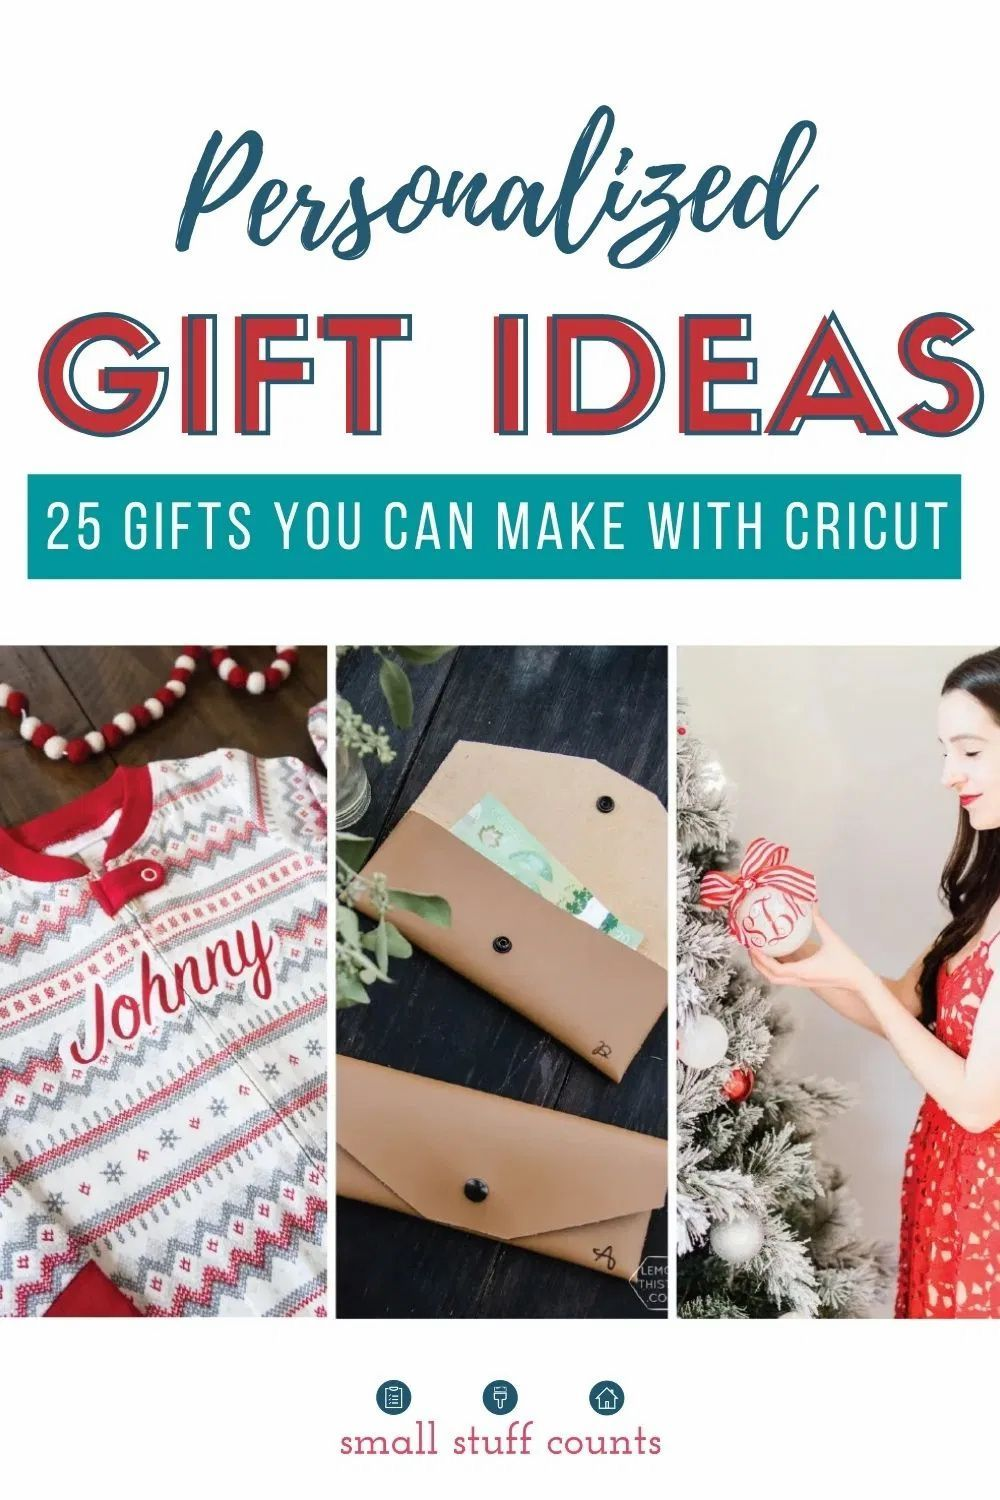 Creating personalized gifts for friends and family is hands-down one of the sweetest things you and your kids can do this Christmas. Here are 25 ideas to help you get started! #diygiftideas #christmasgiftideas #cricutholidaygifts